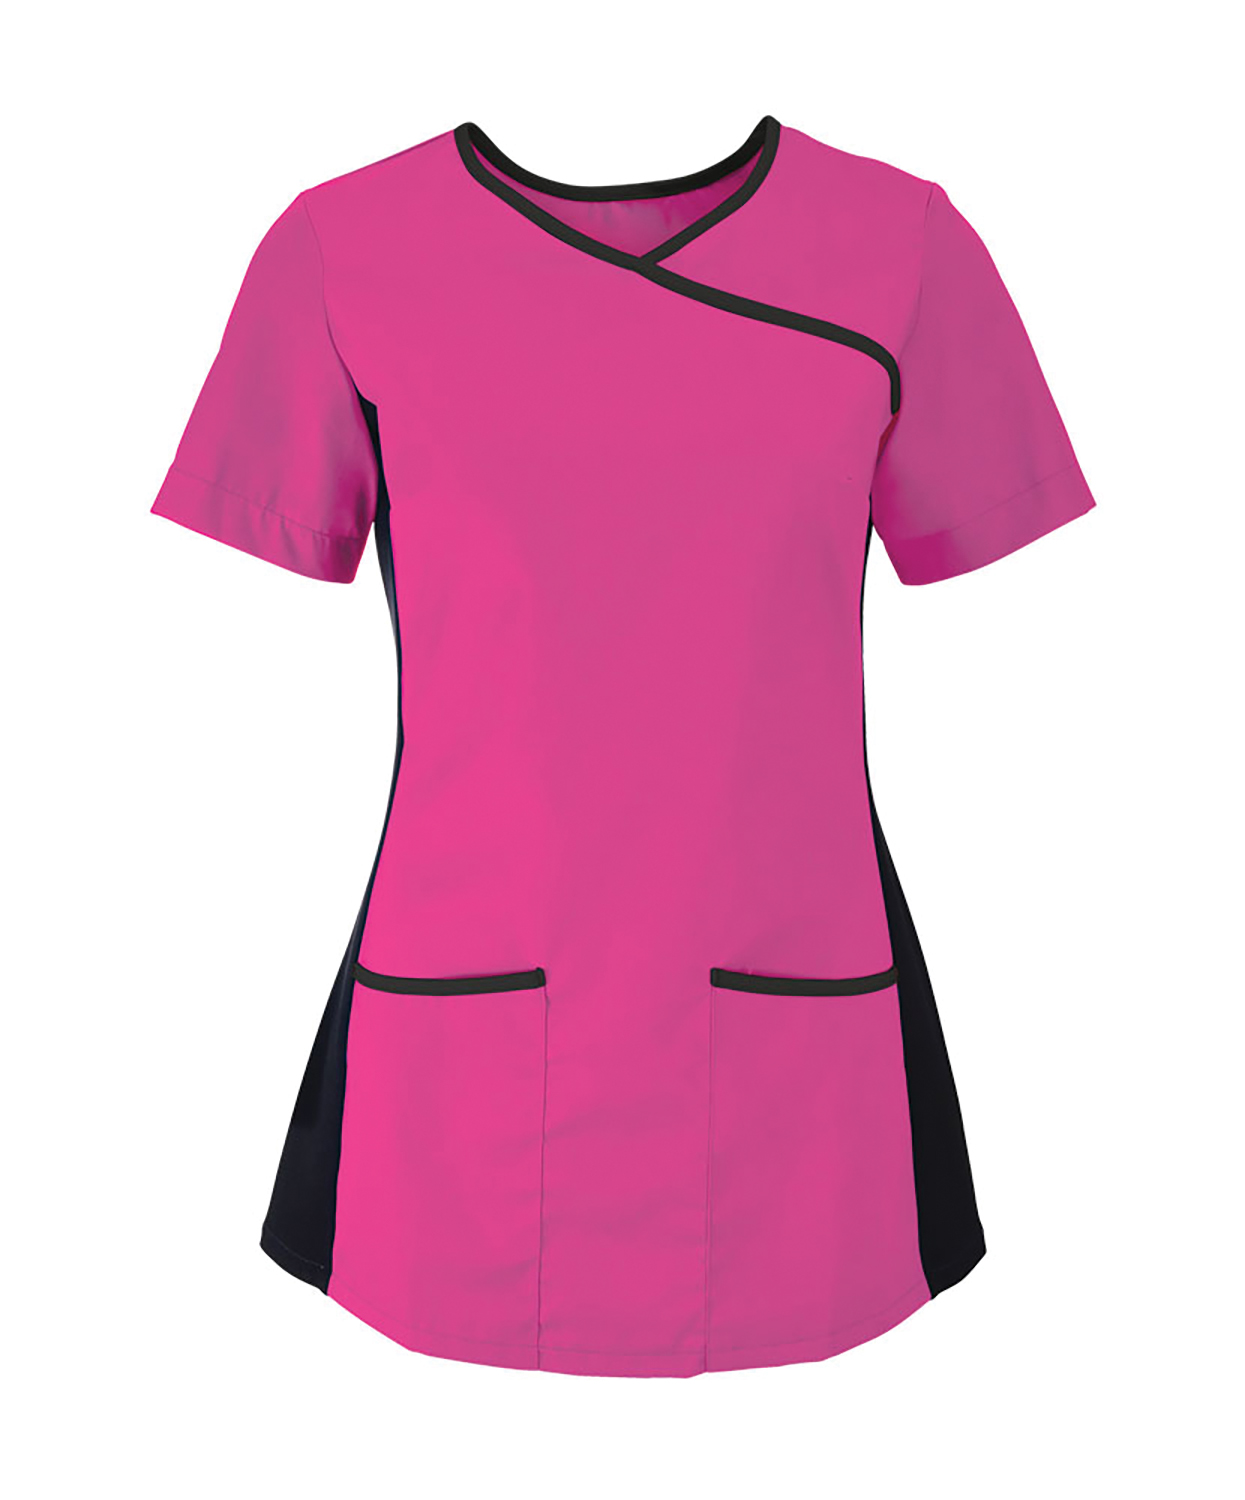 housekeeping and housekeeping uniforms essay Housekeeping uniforms, trenton, new jersey 255 likes 7 talking about this we provide high quality, affordable maid dresses, maid uniforms, hotel.